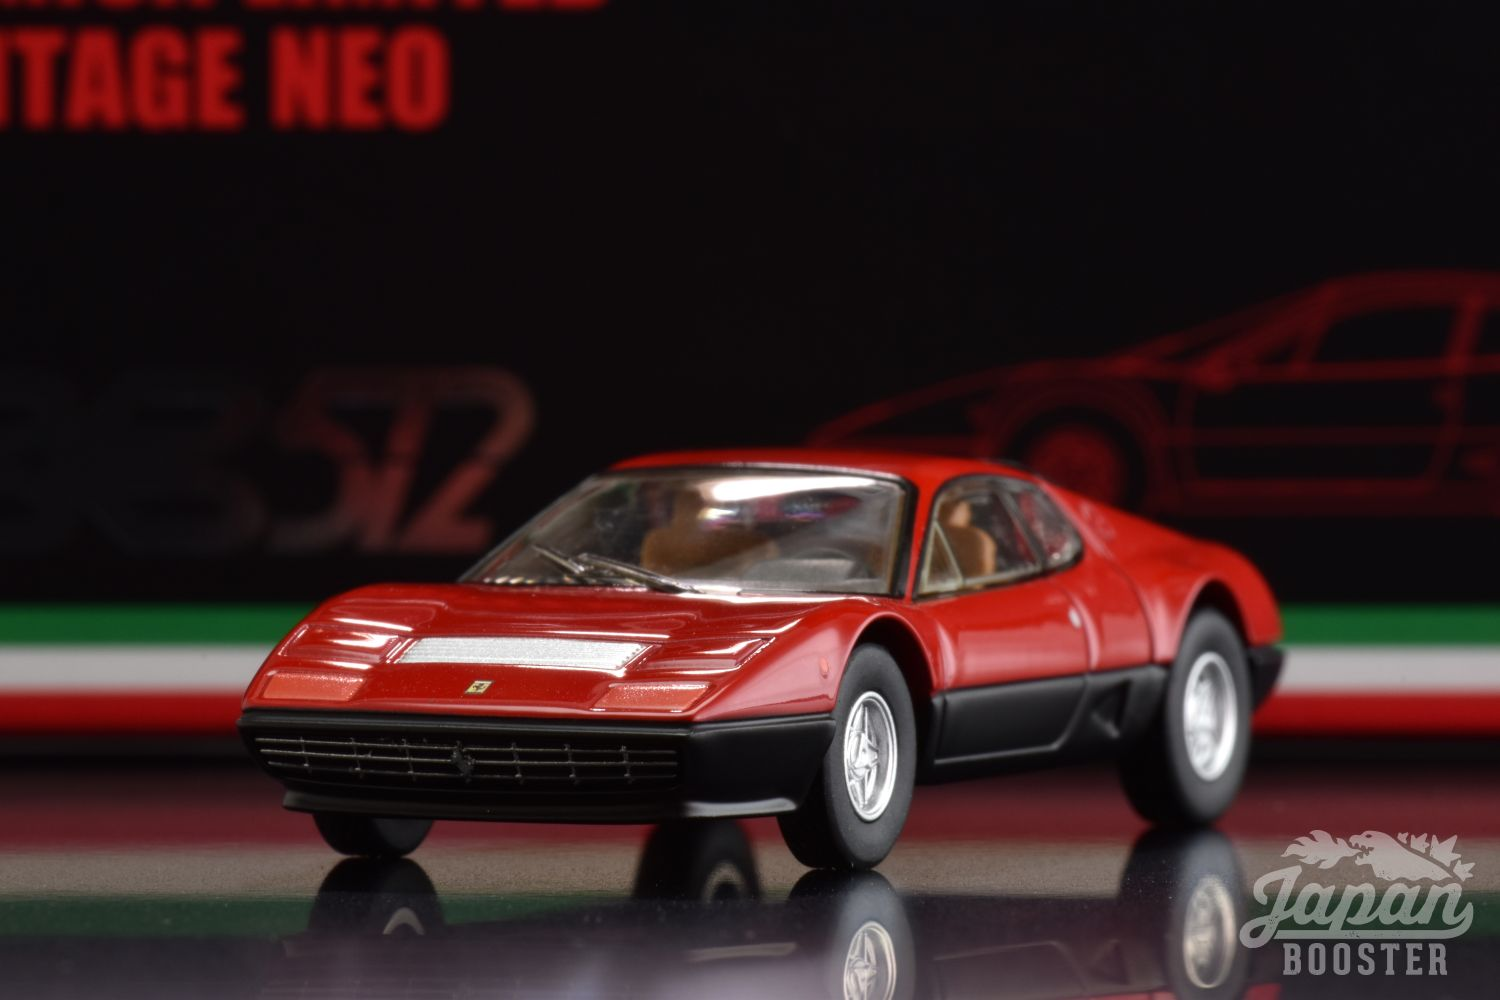 LV-FERRARI 512BB Red